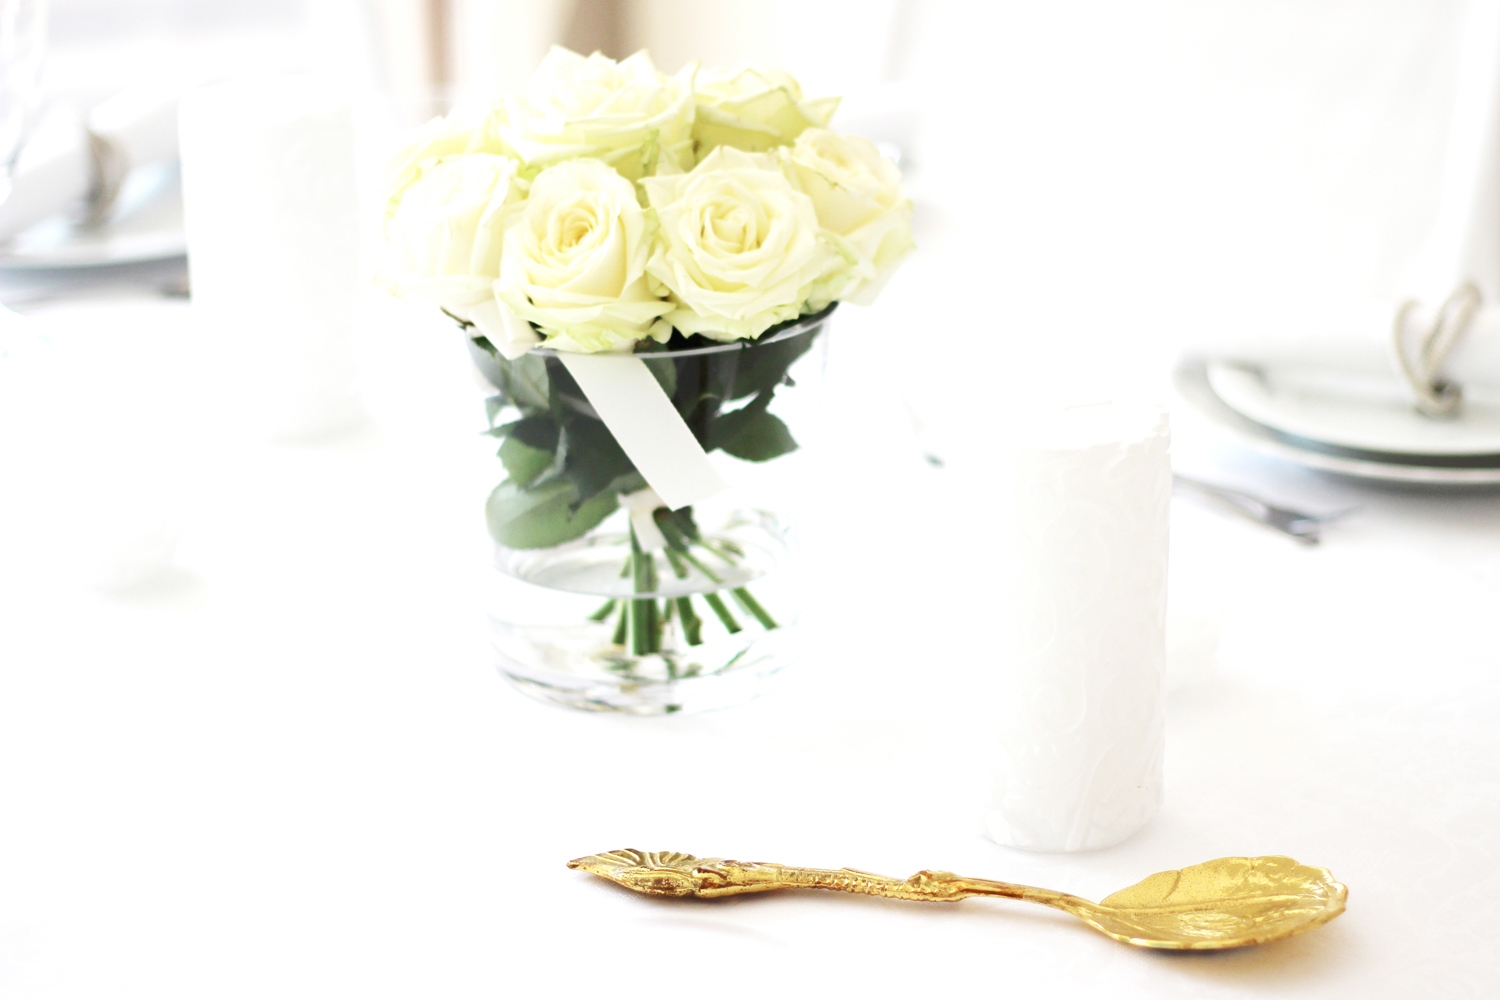 fatimayarie-homedecor-white-flowers-dinner-party-fashionblog-img_1348